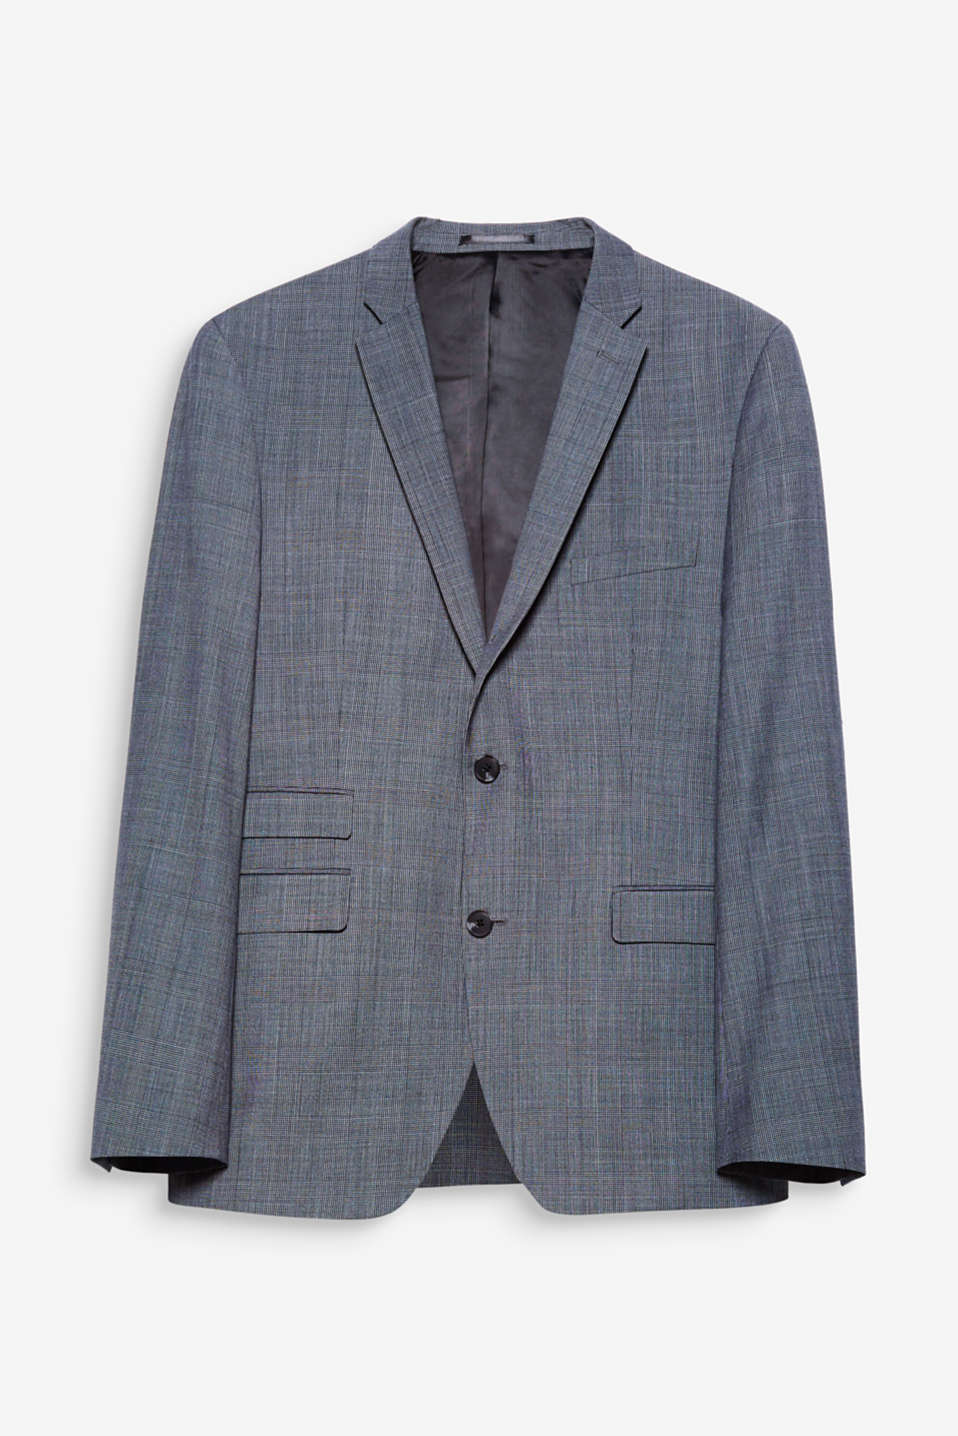 This suit jacket will turn heads thanks to its classic Prince of Wales pattern.